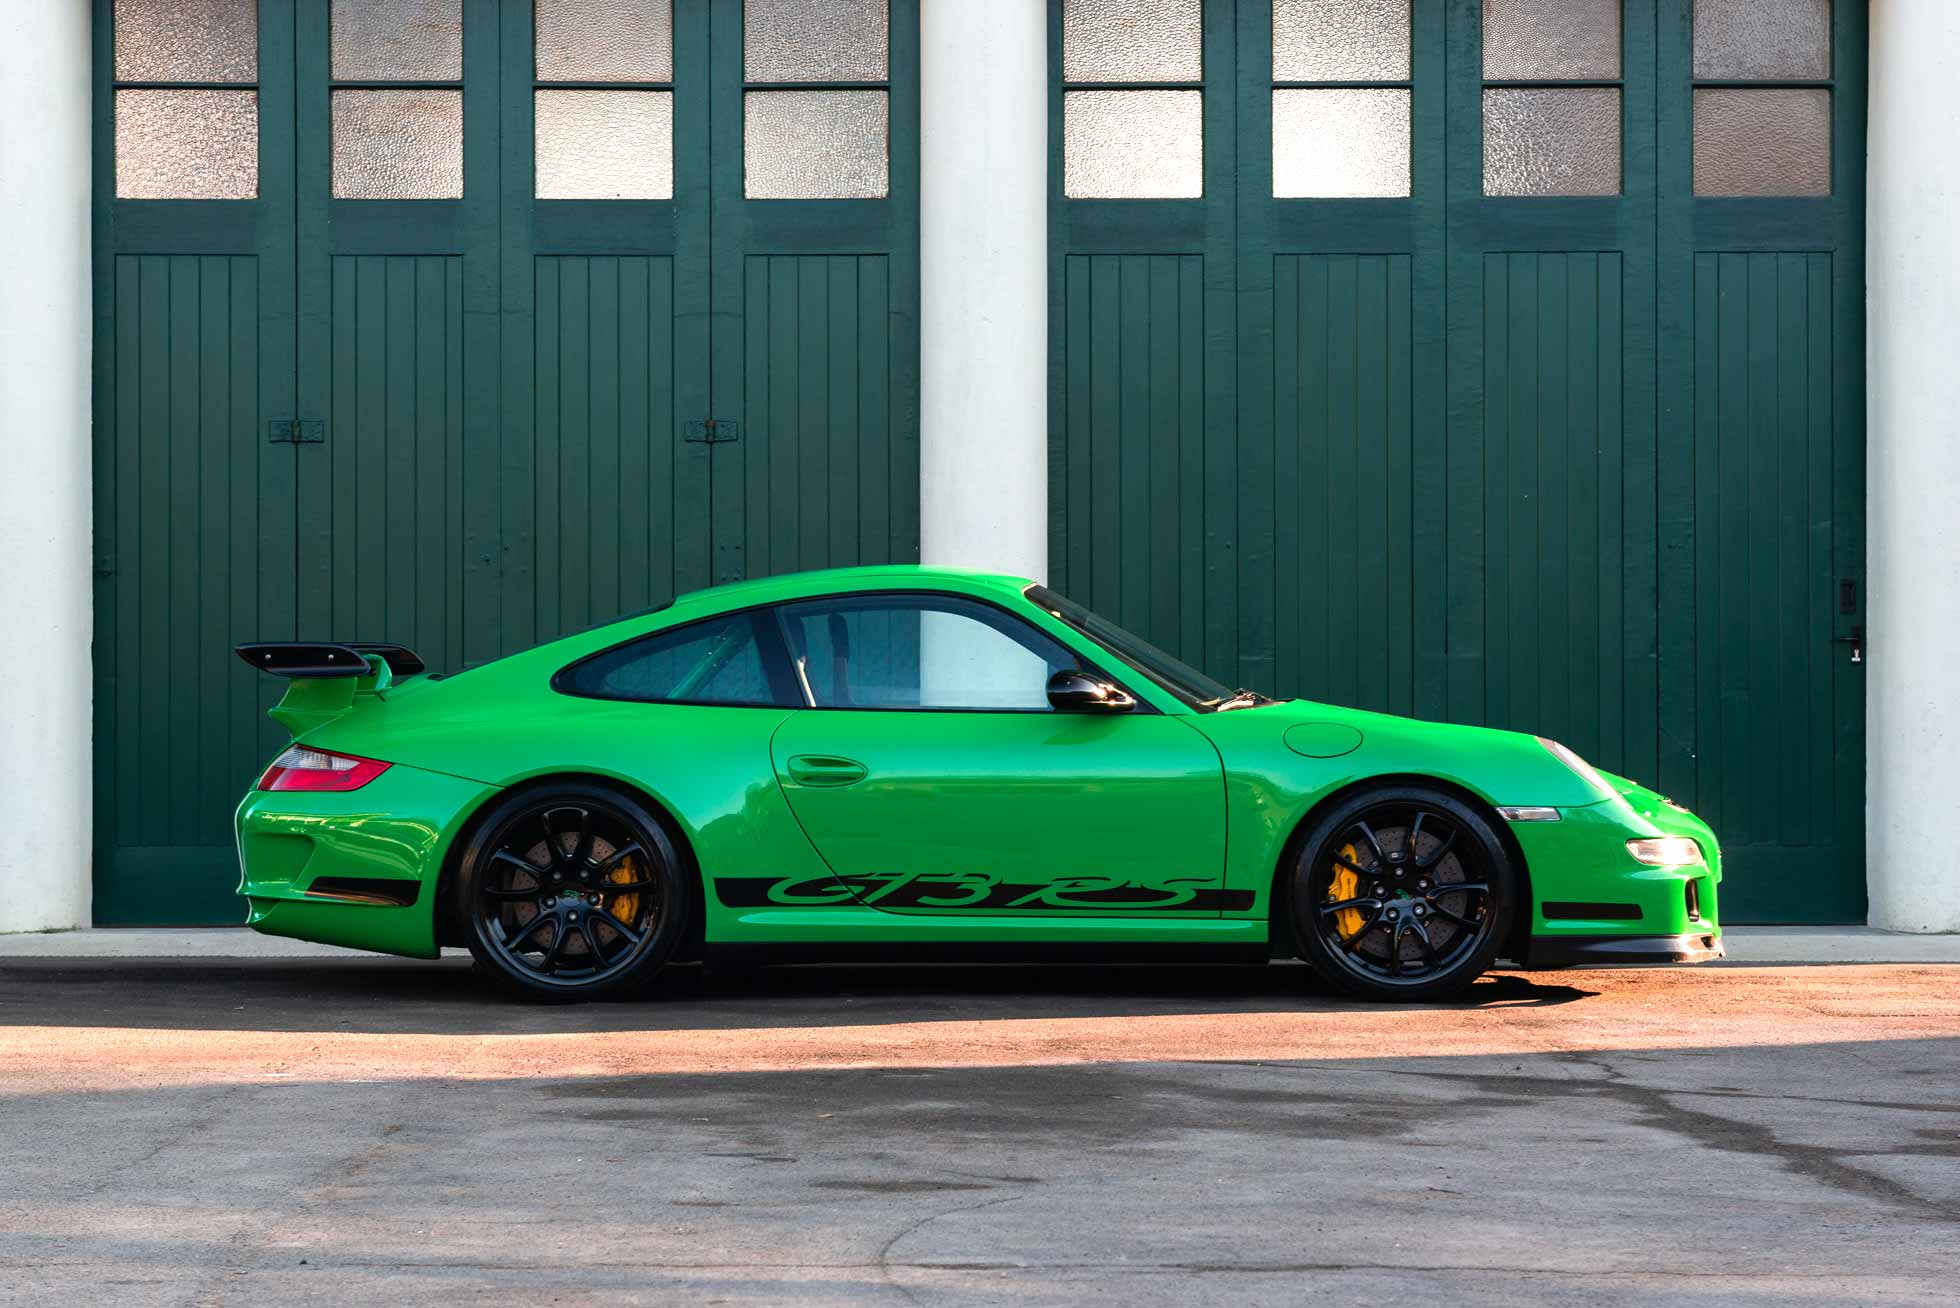 2008 Porsche 911 Gt3 Rs 9971 Sold Cars Sports Purpose